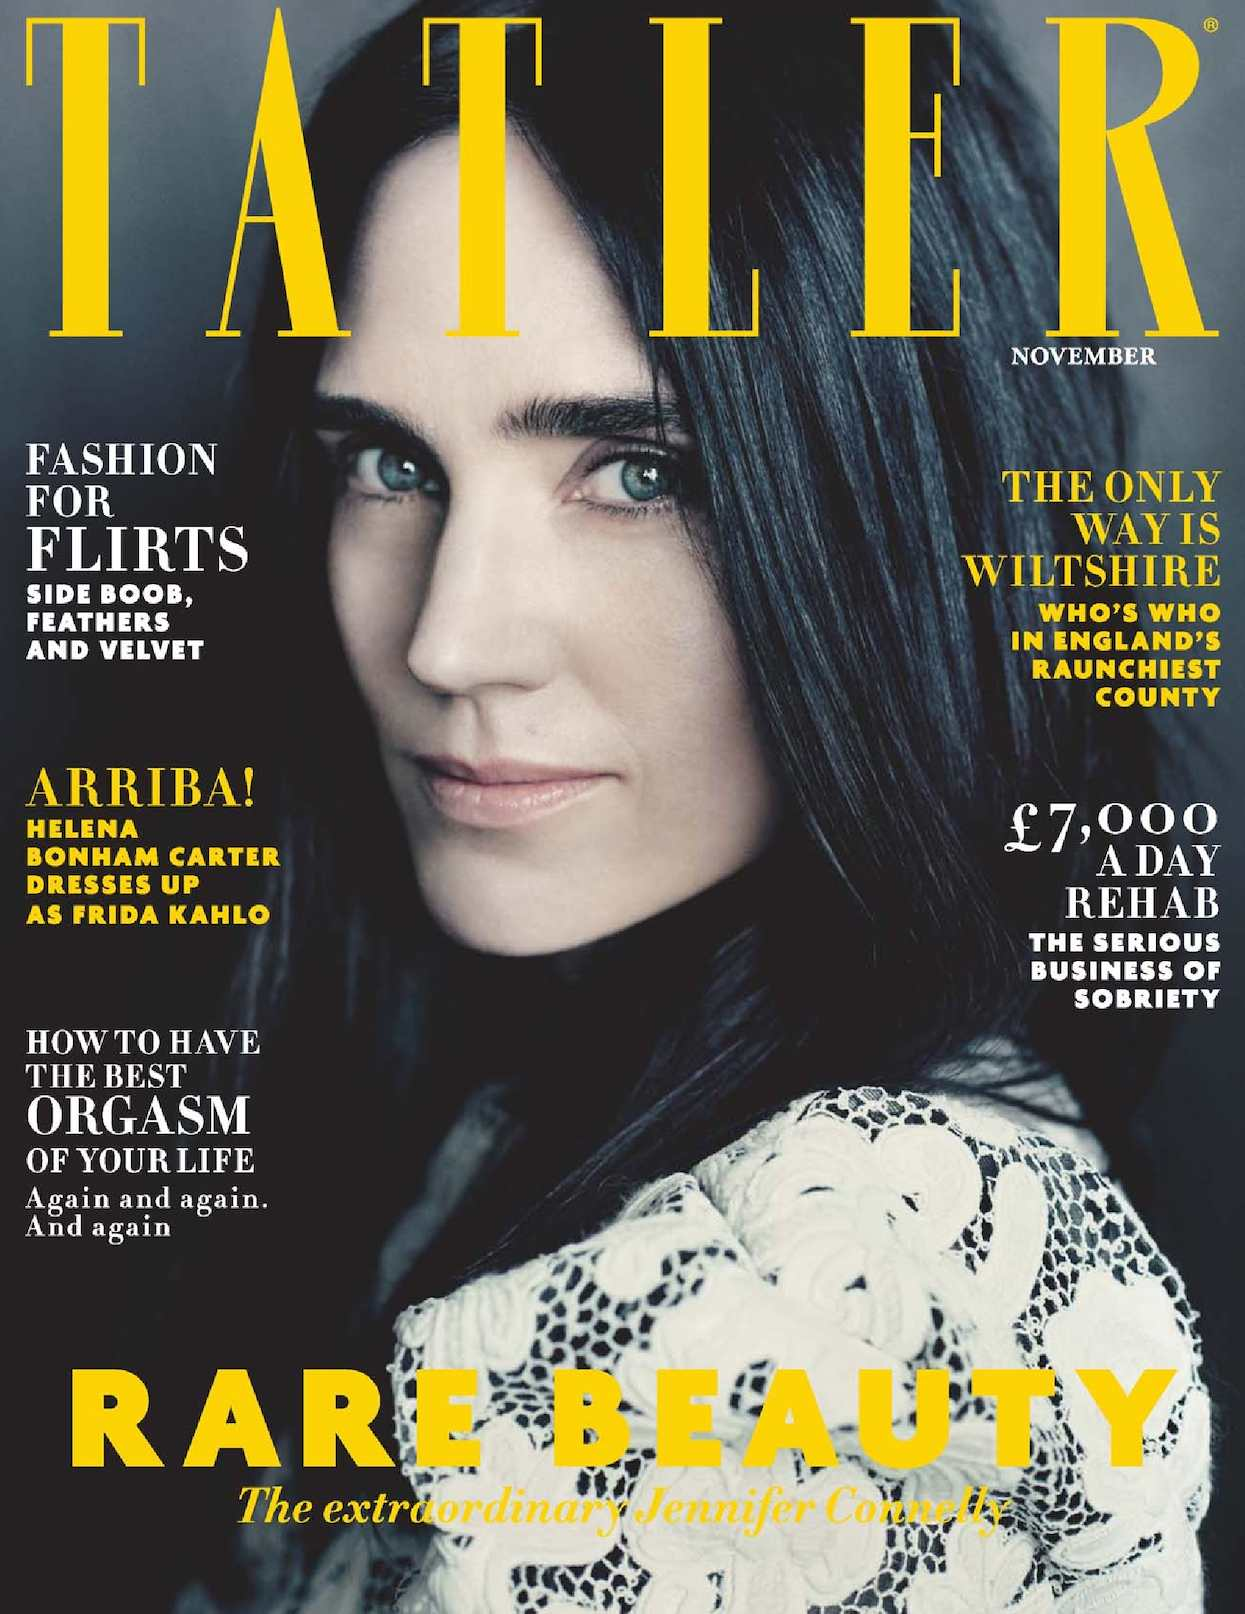 ec25f0f21f070 Calaméo - Tatler Uk November 2015